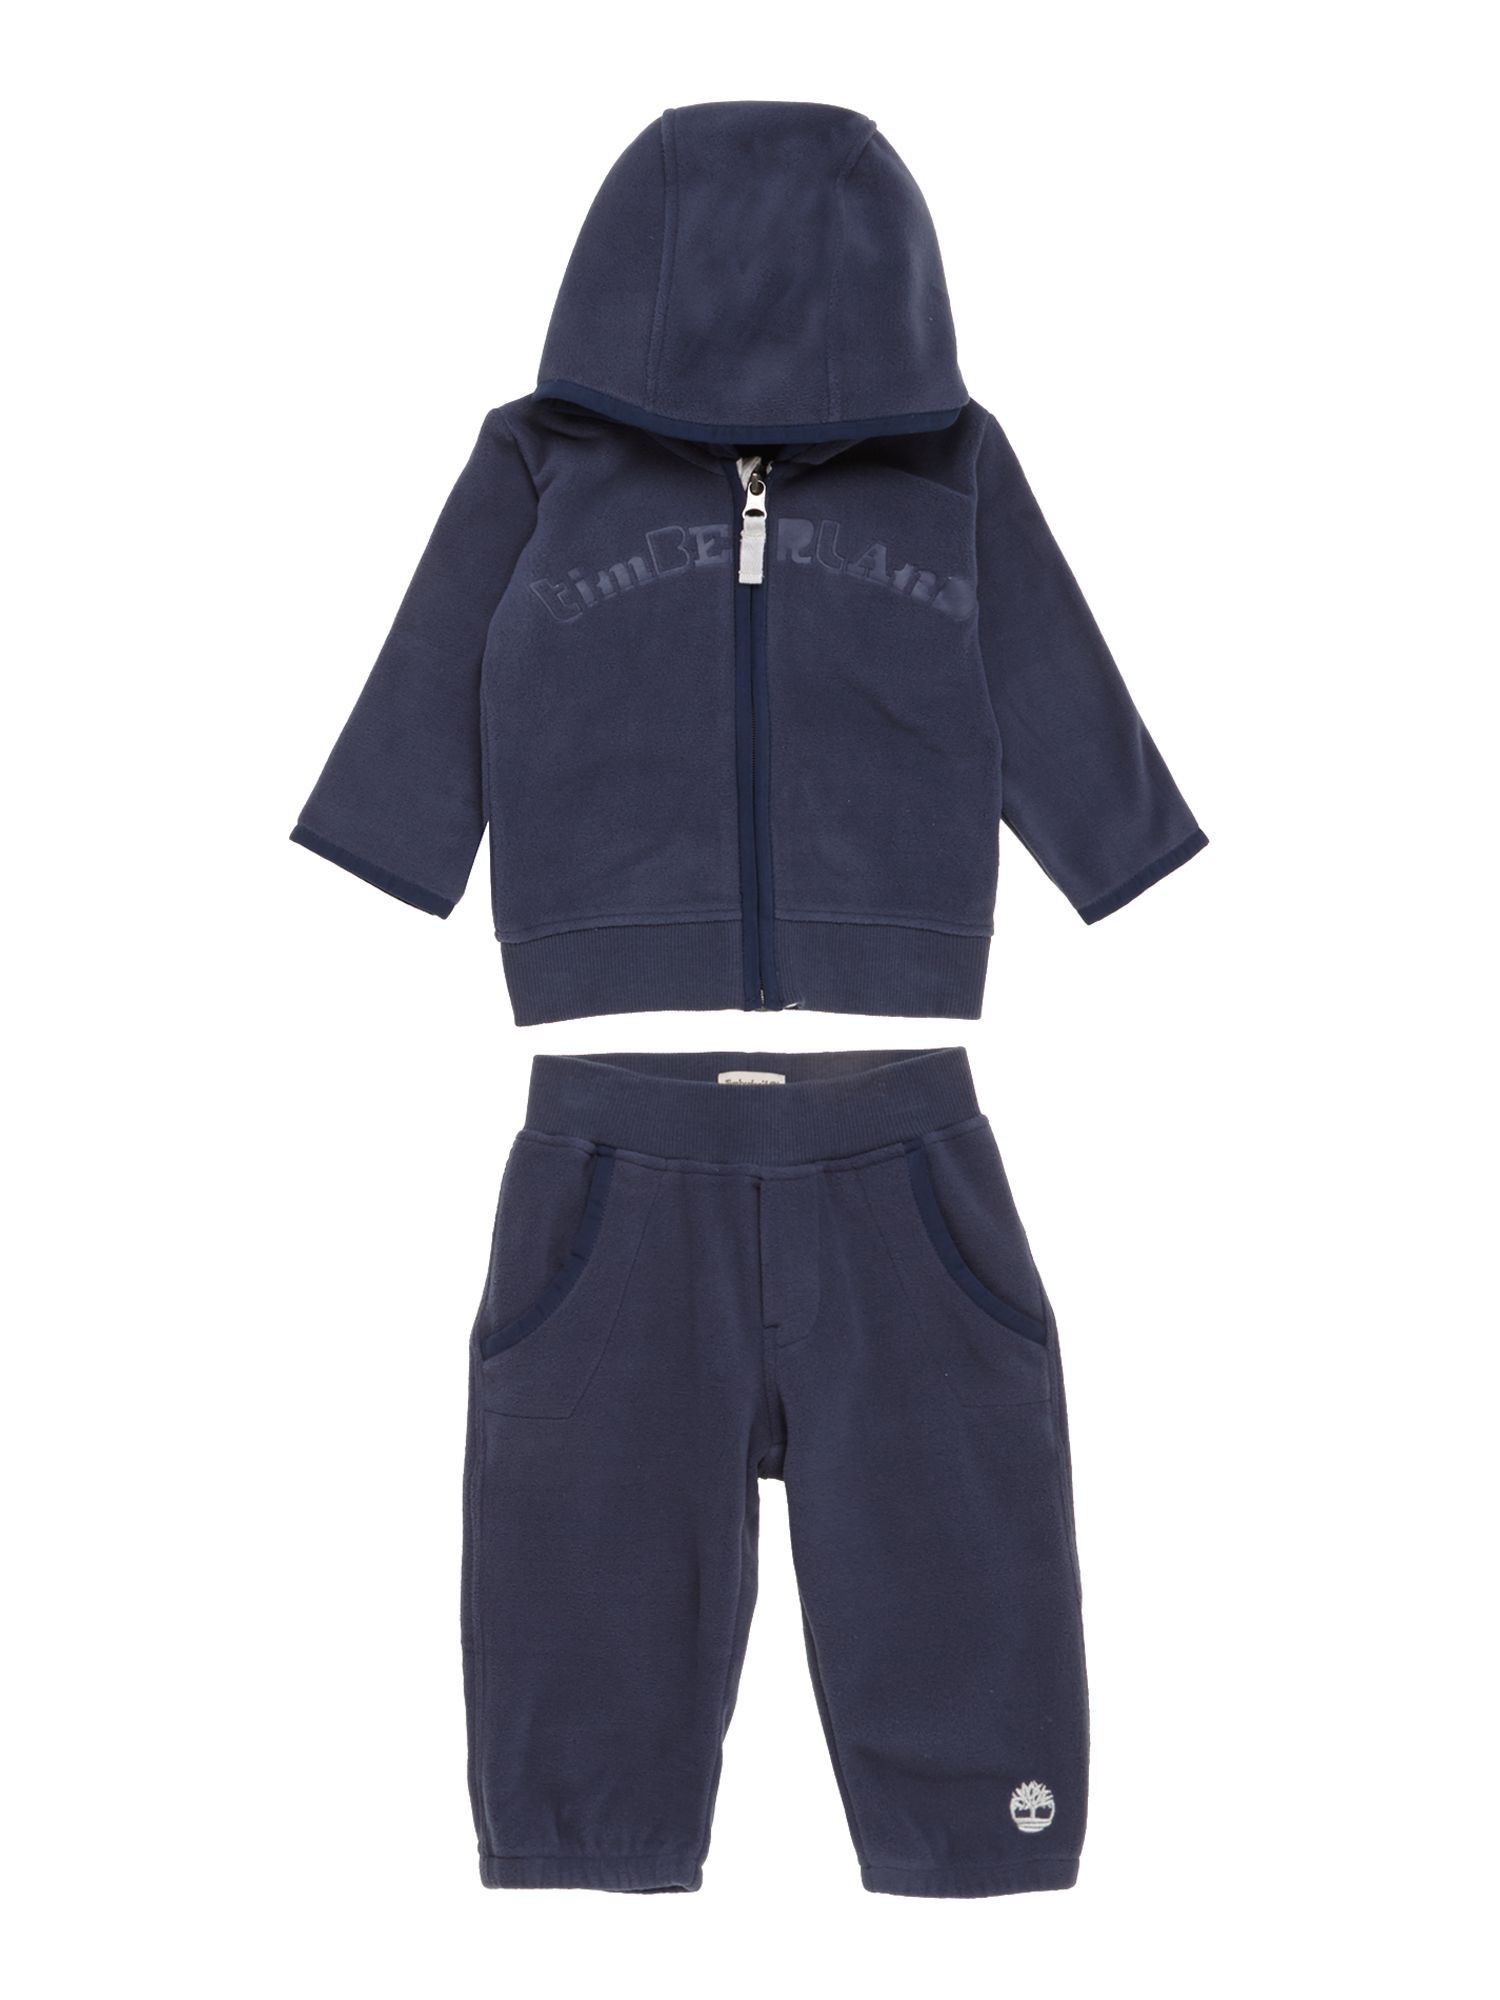 Boy`s cardigan and pants set